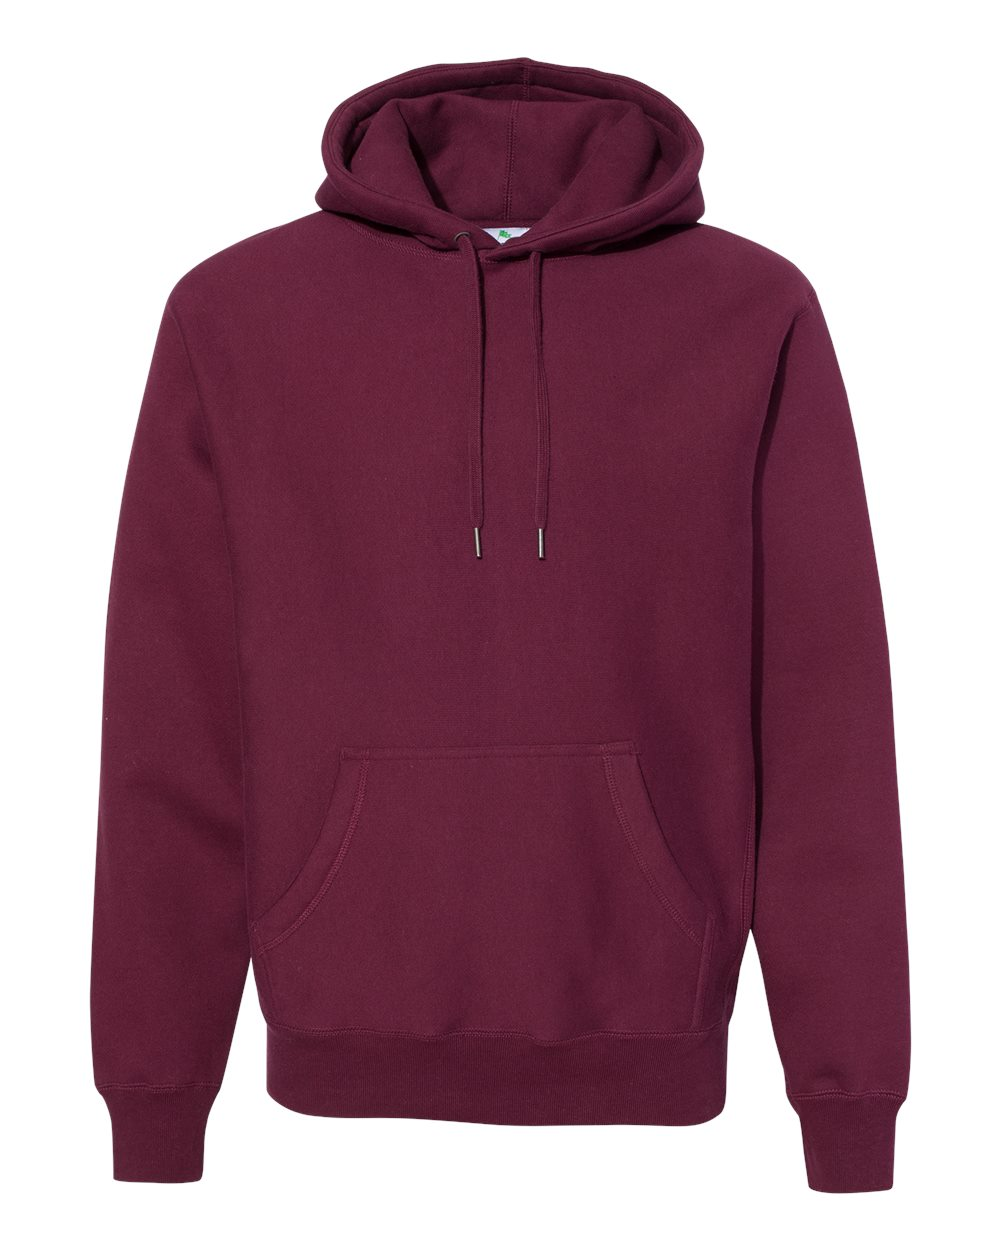 Independent-Trading-Co-Mens-Premium-Heavyweight-Cross-Grain-Hoodie-IND5000P thumbnail 24